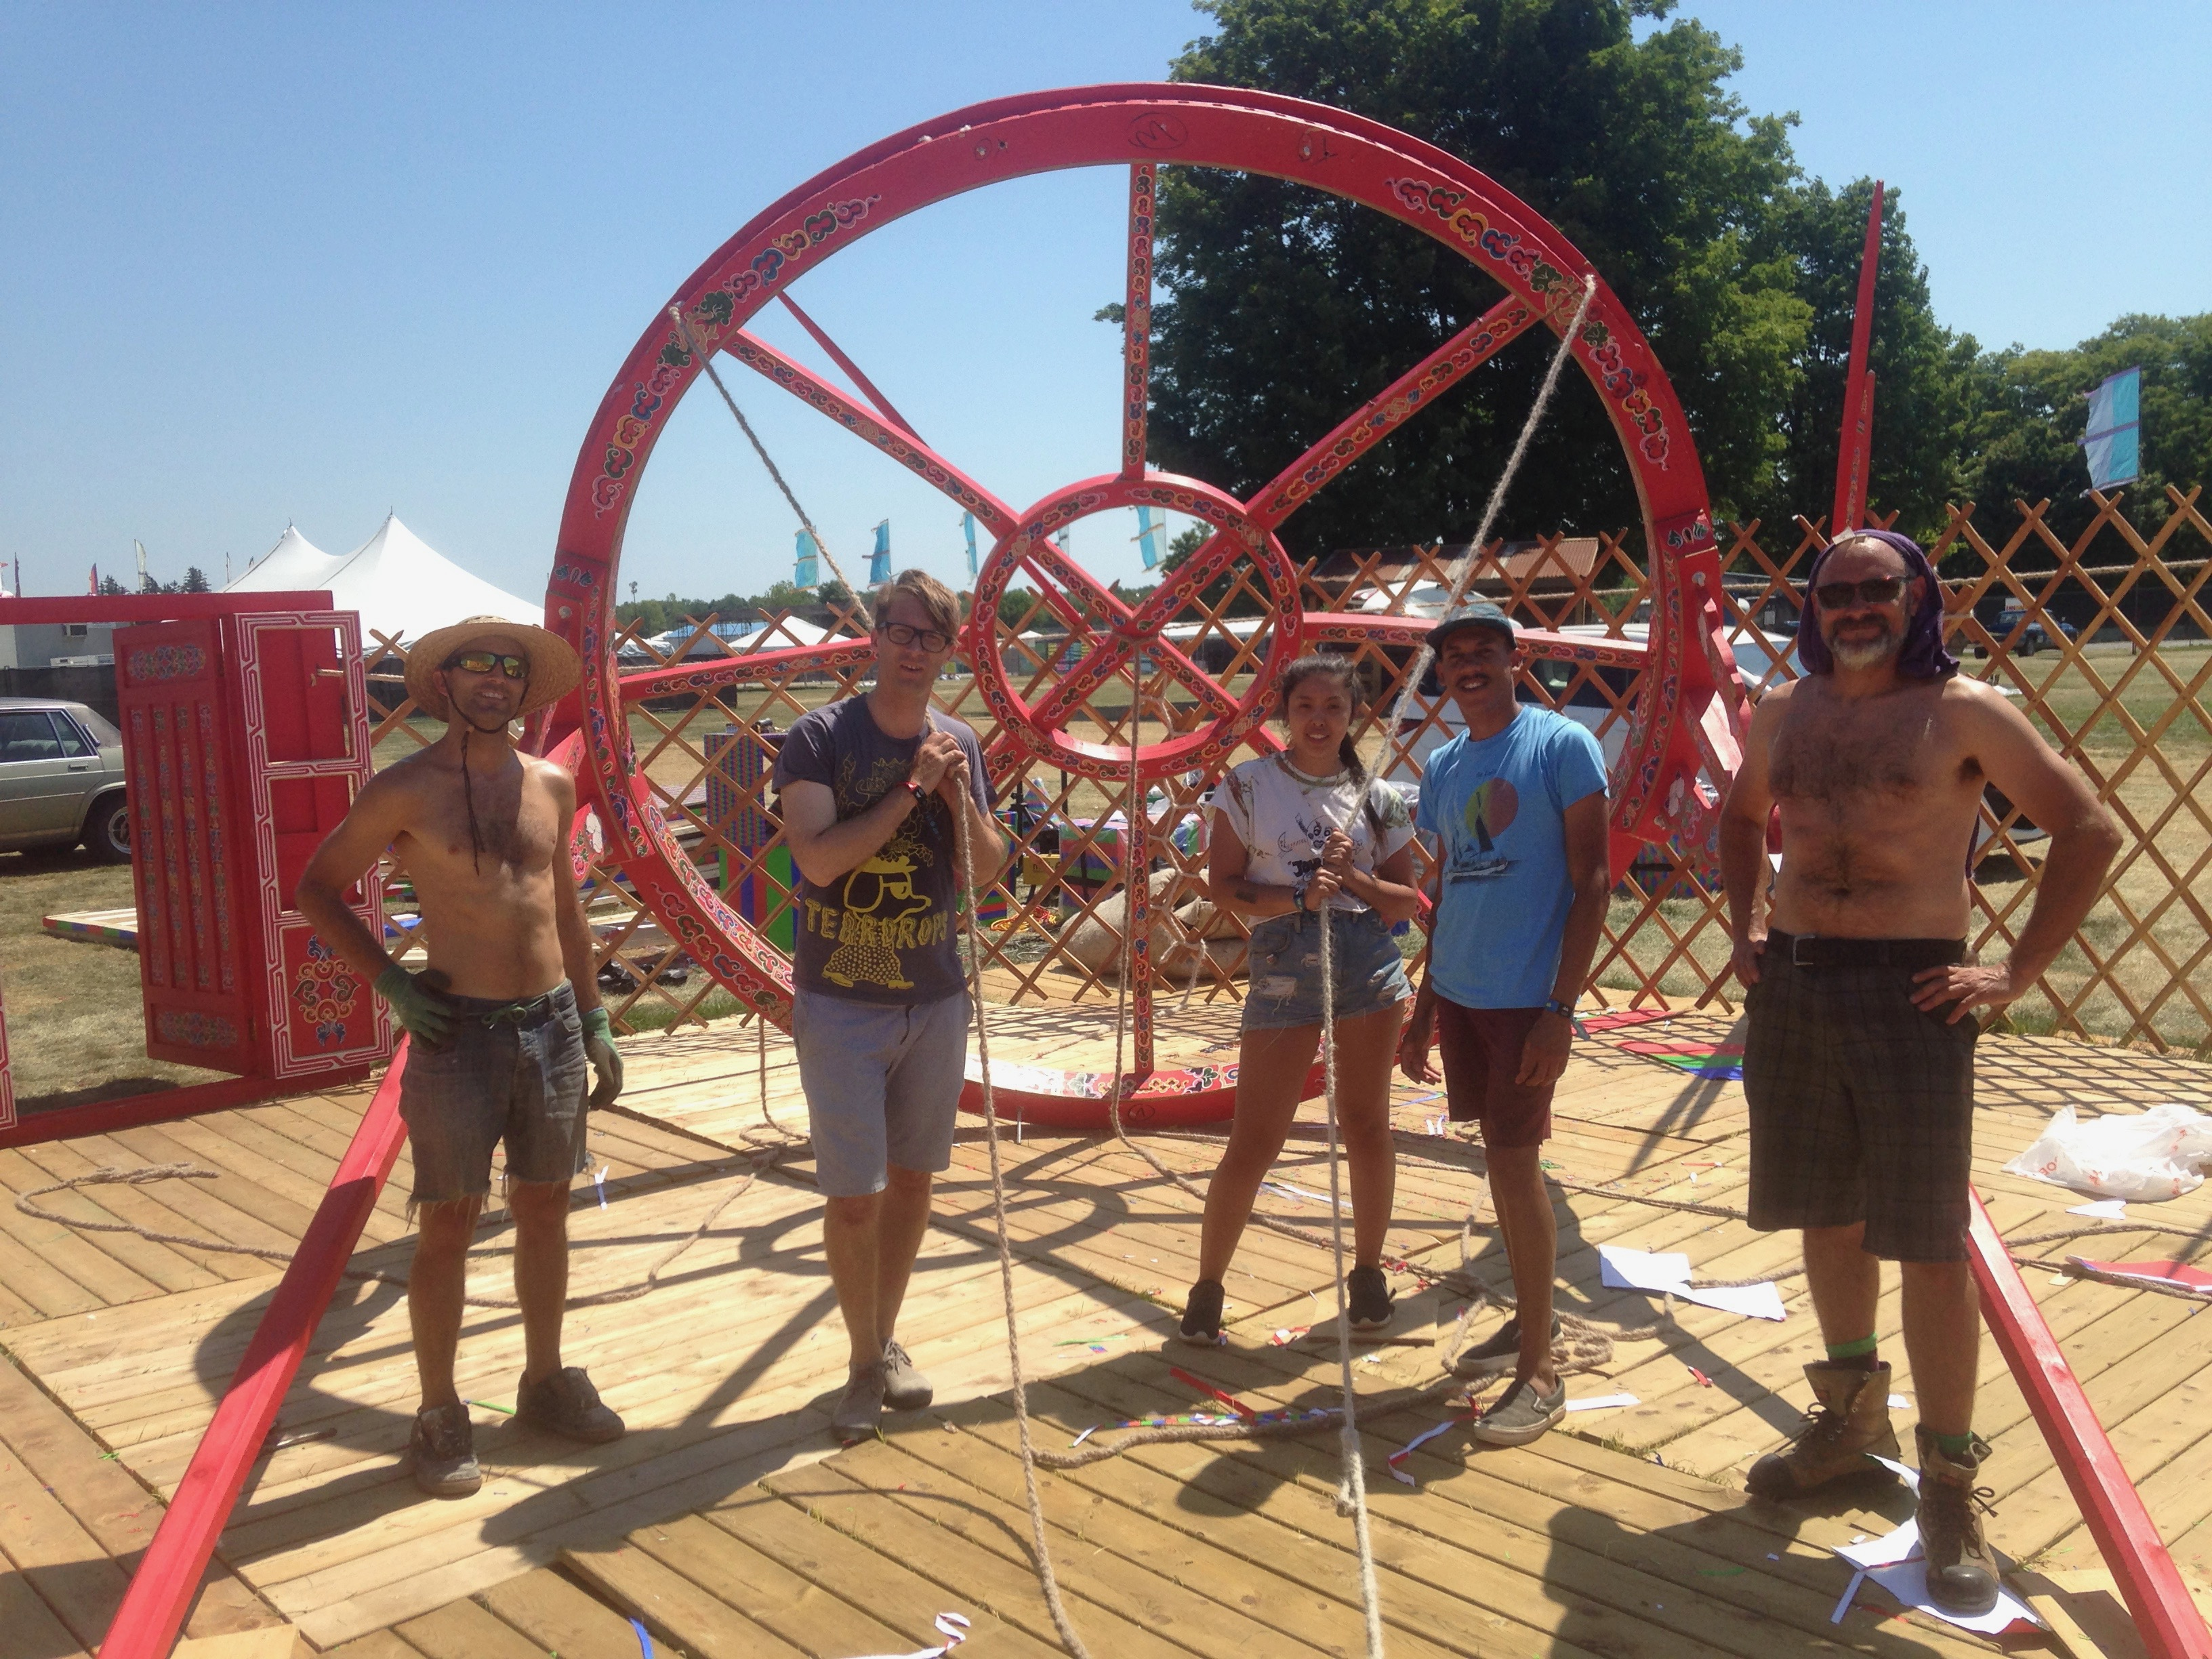 Setting up a large Yurt at a festival